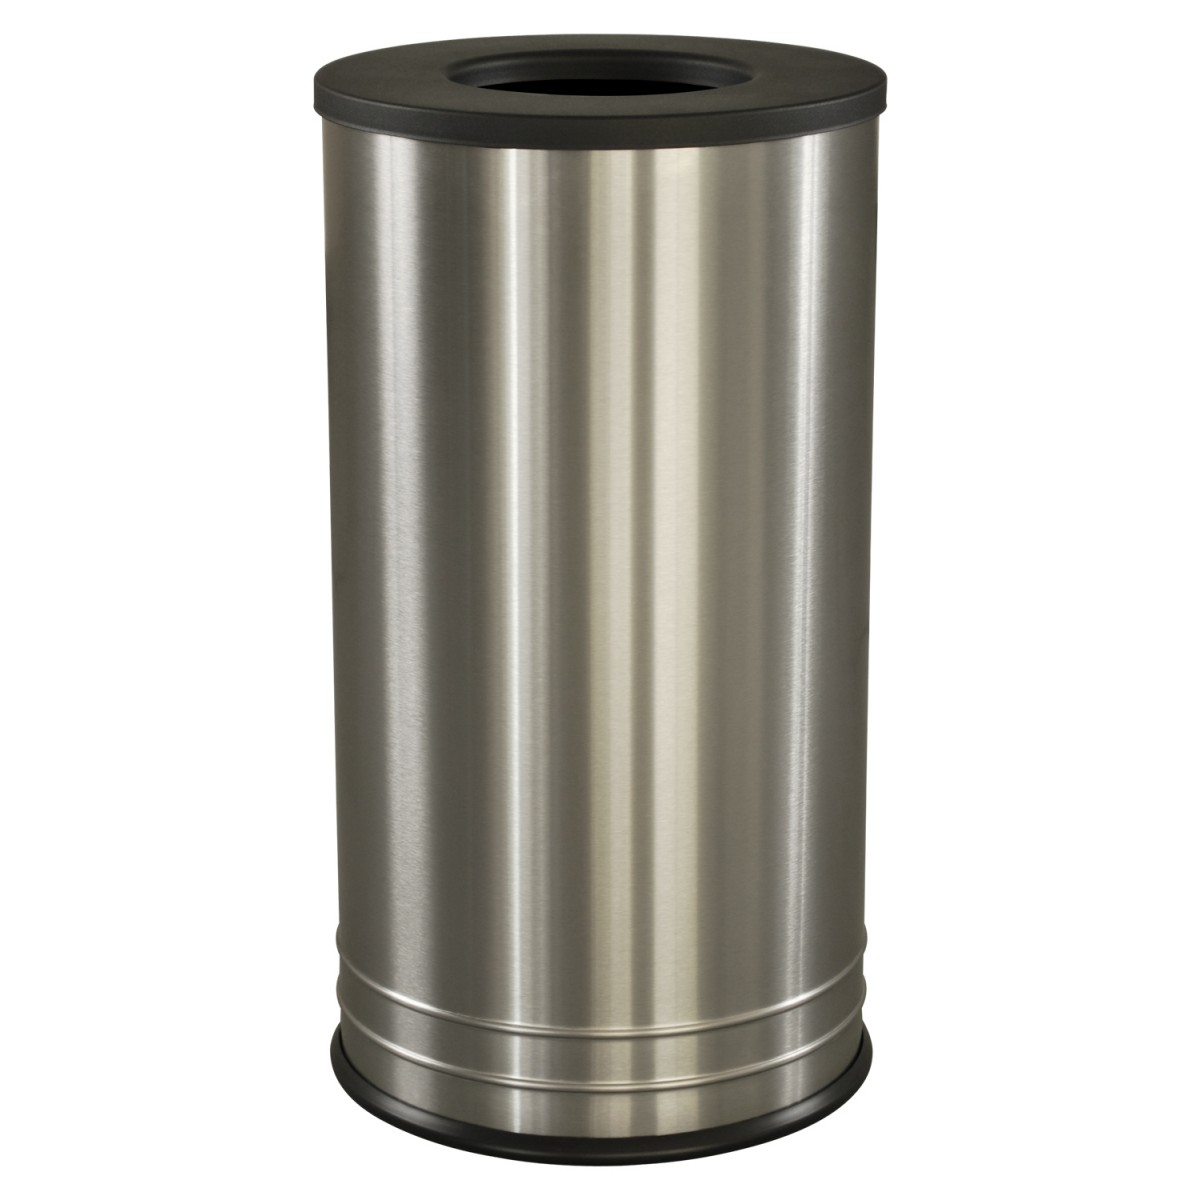 International series flat top trash receptacle stainless steel trash cans warehouse